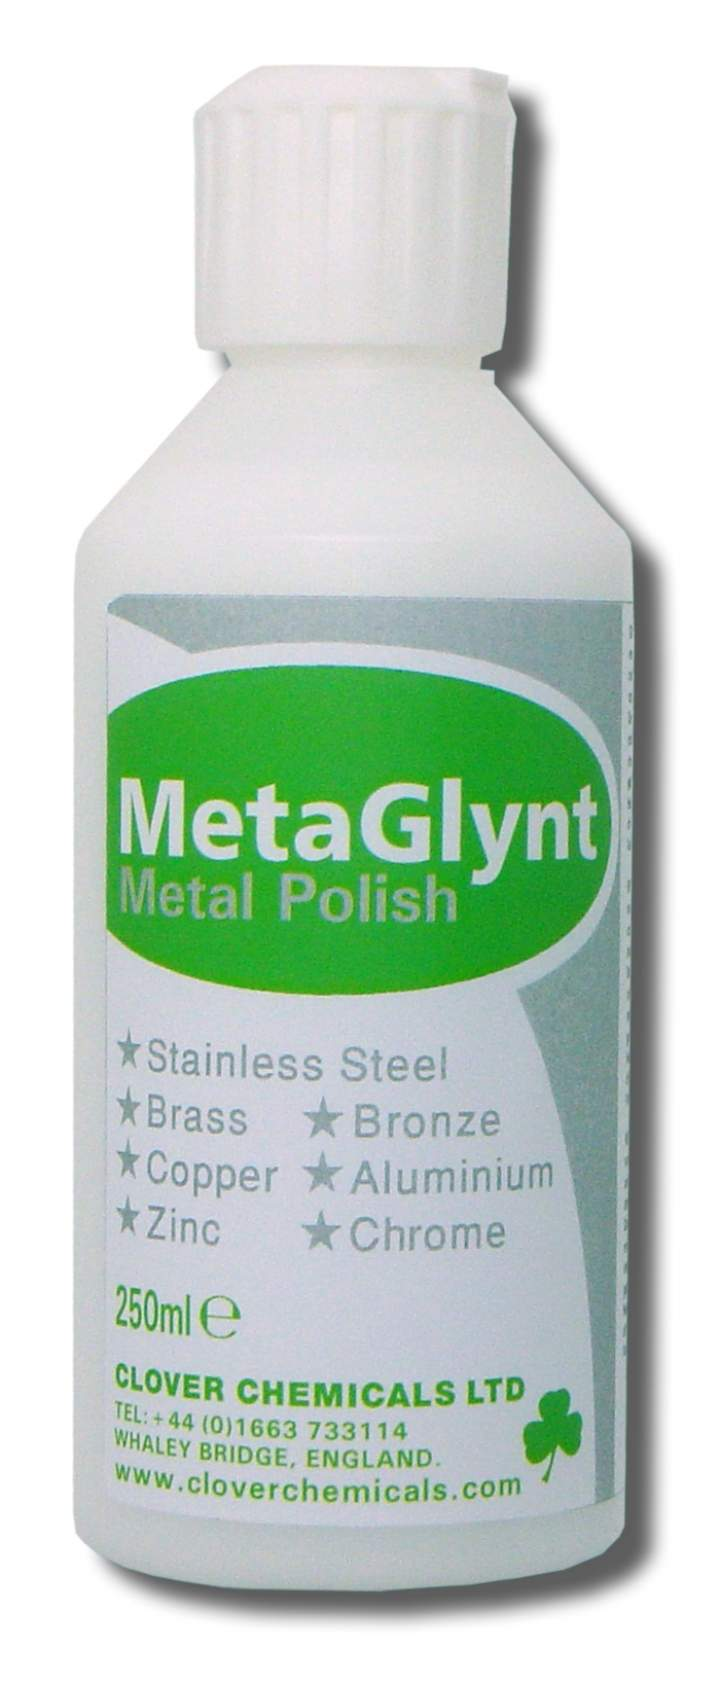 METAGLYNT ALL PURPOSE METAL POLISH - 250ml